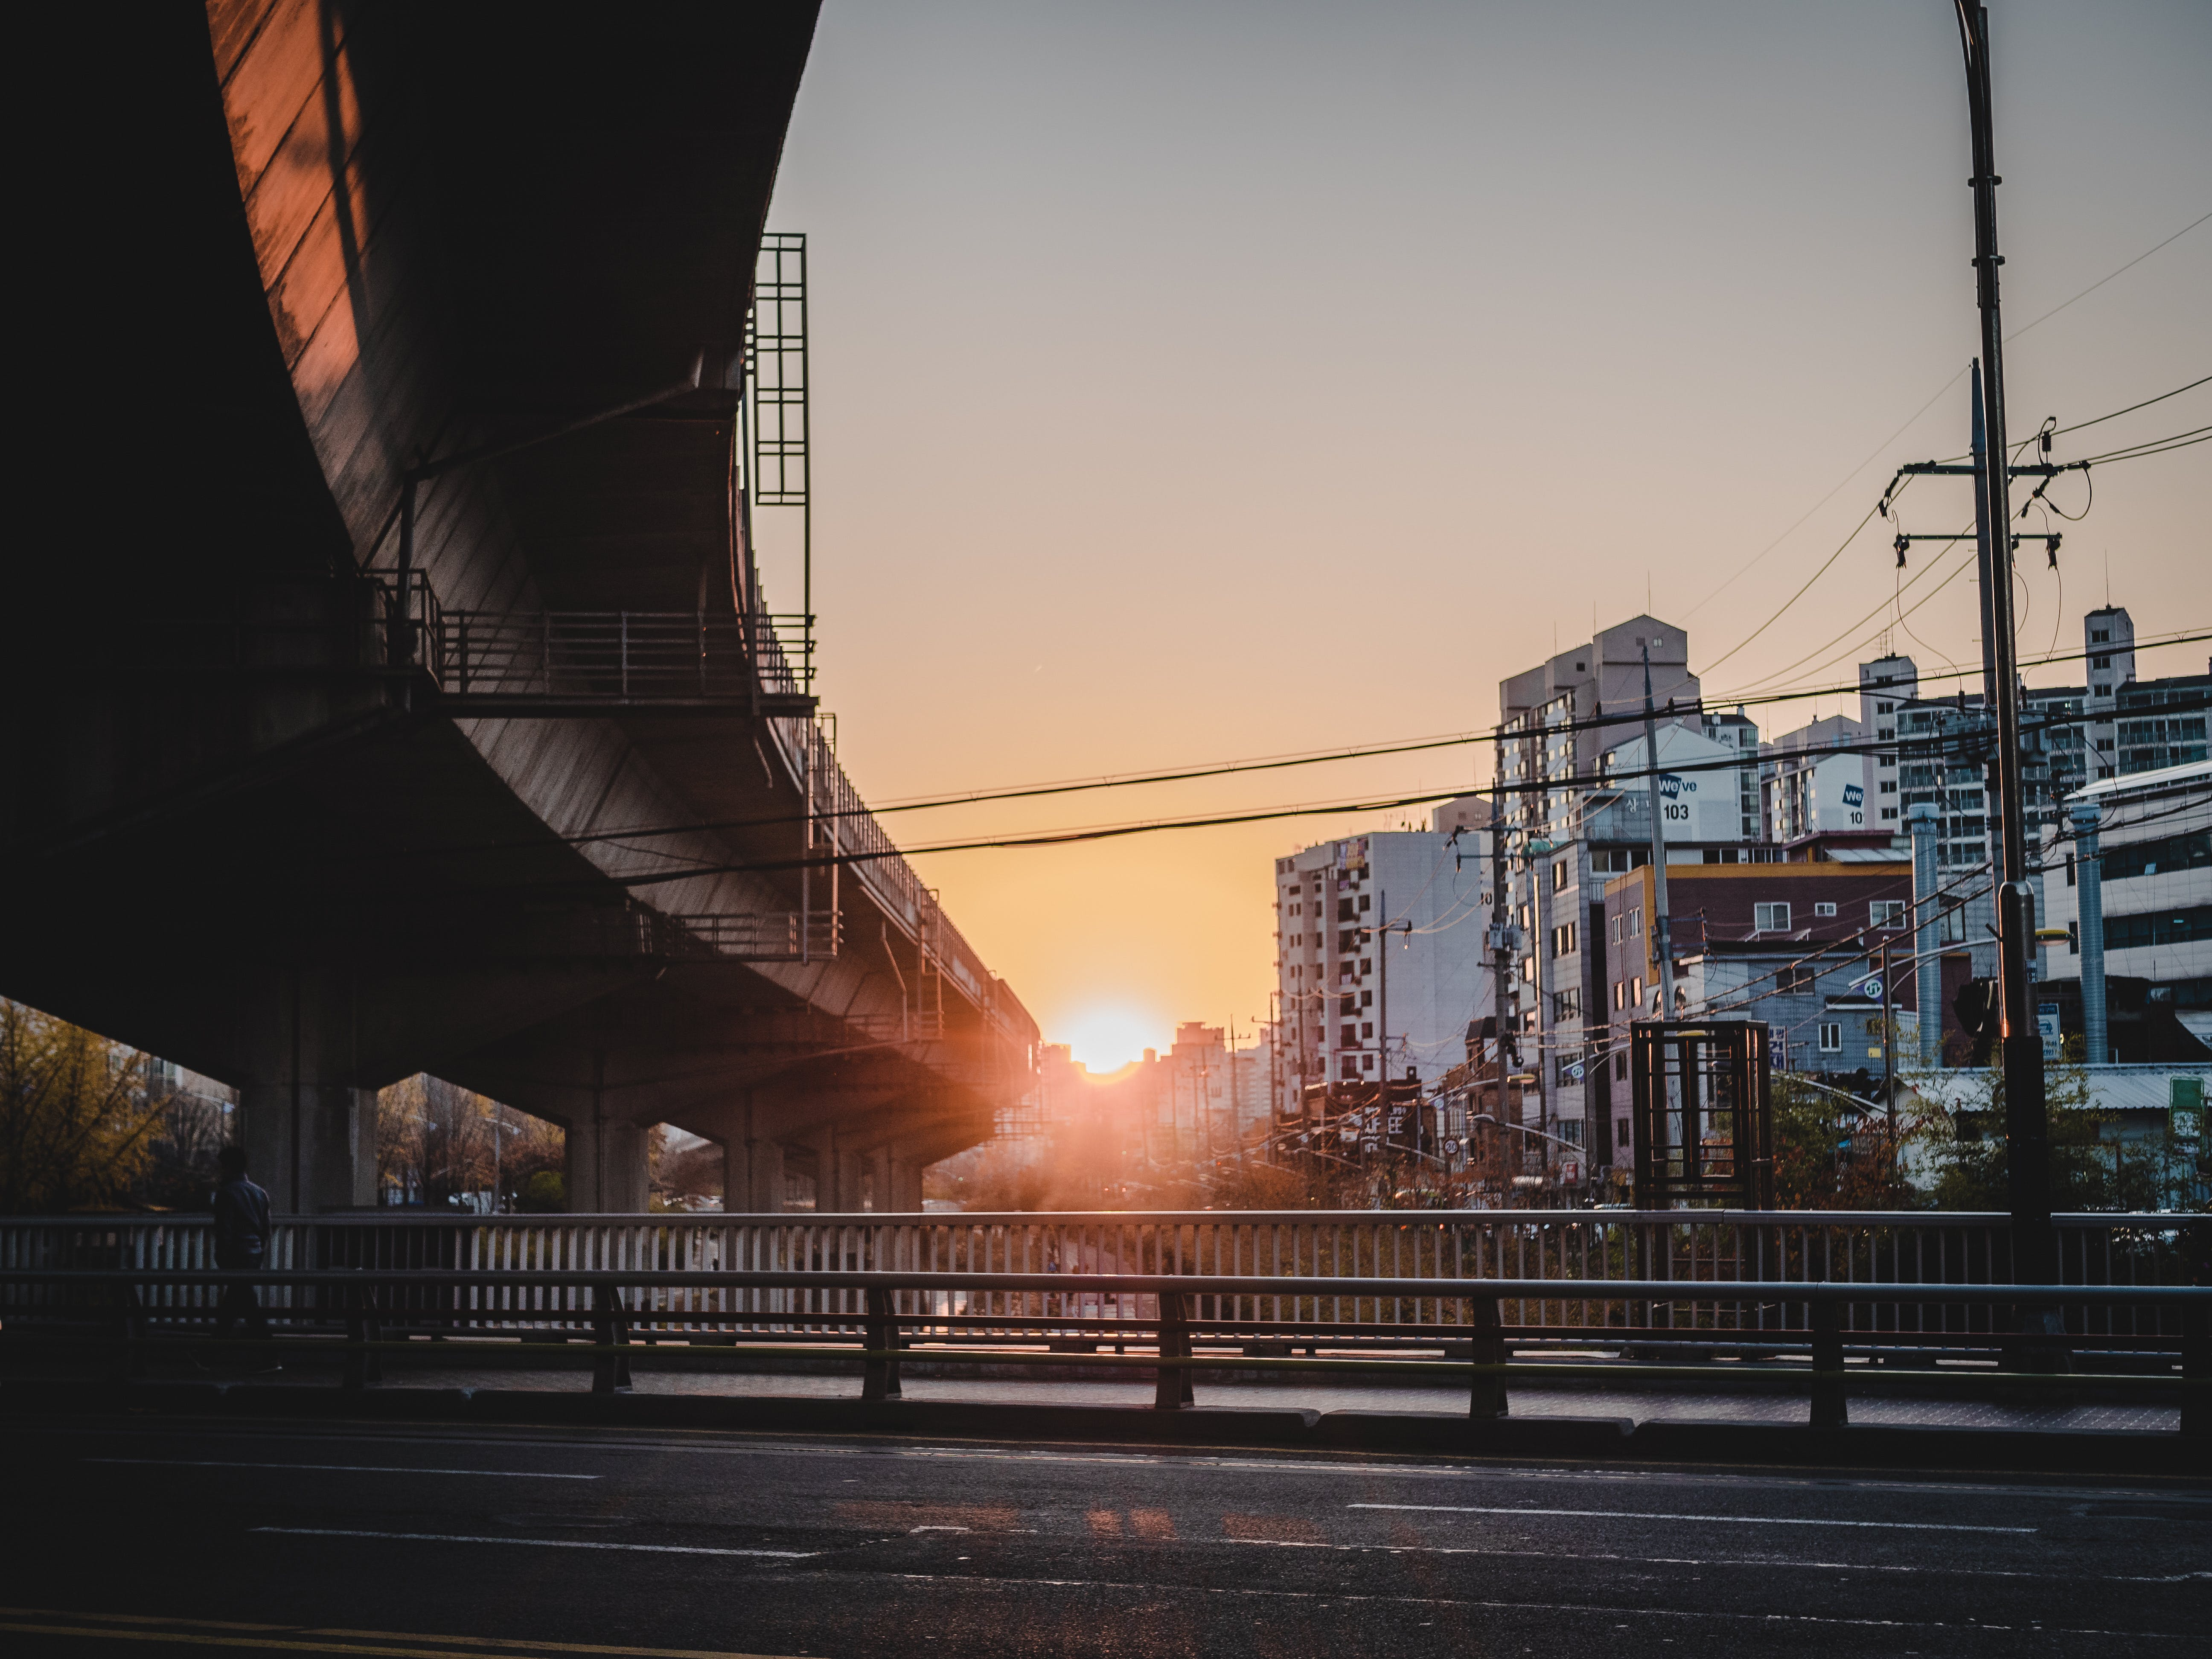 Road and Flyover during Golden Hour